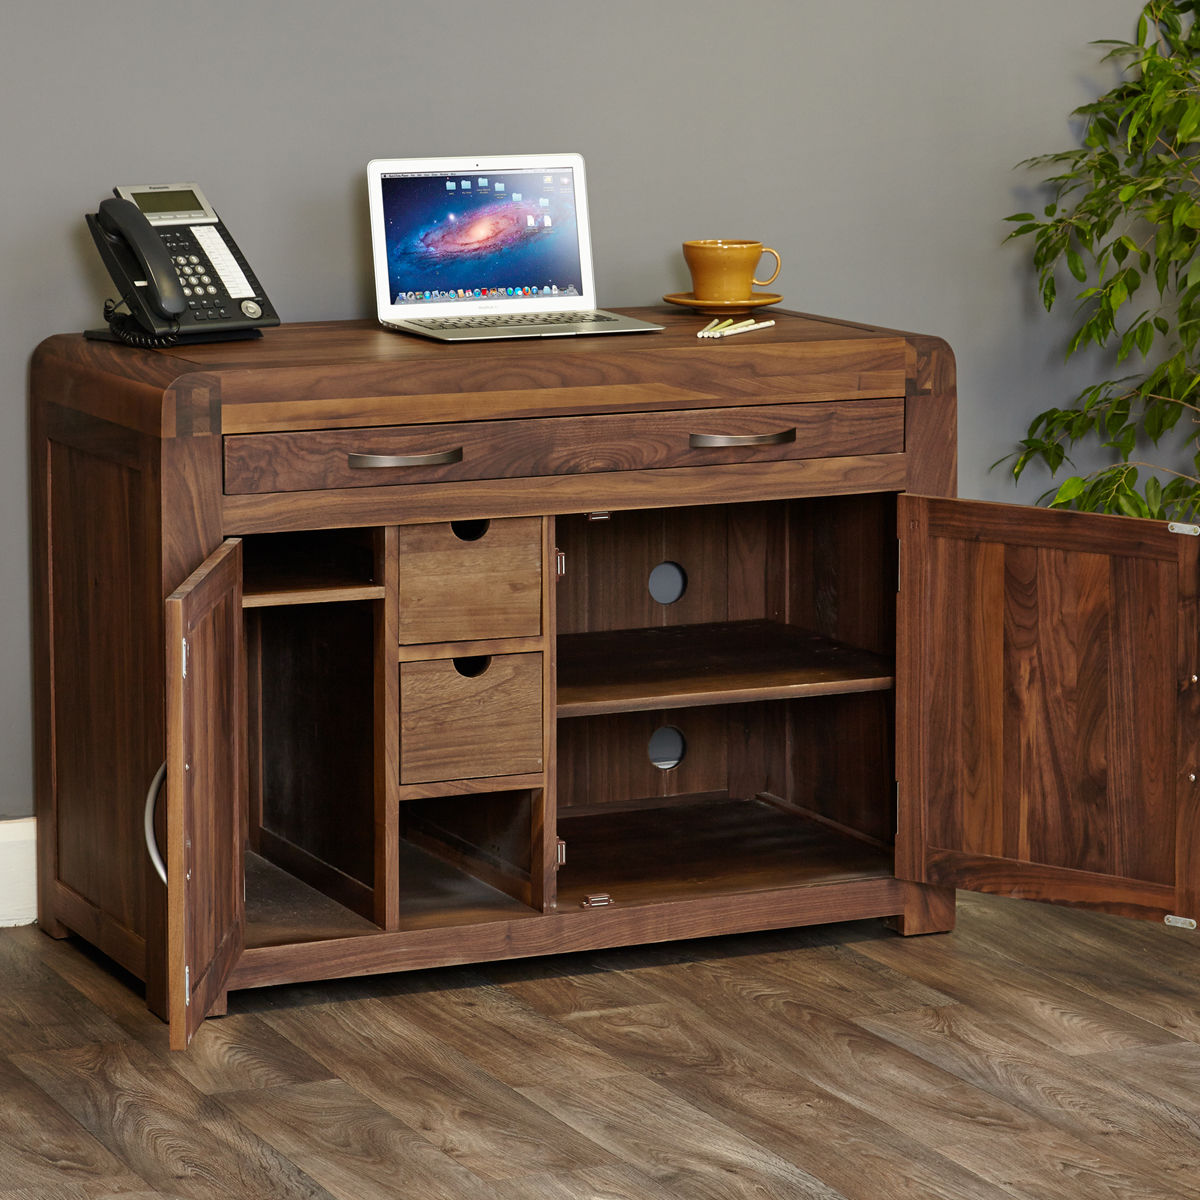 Shiro Walnut Hidden Home Office Wooden Furniture Store